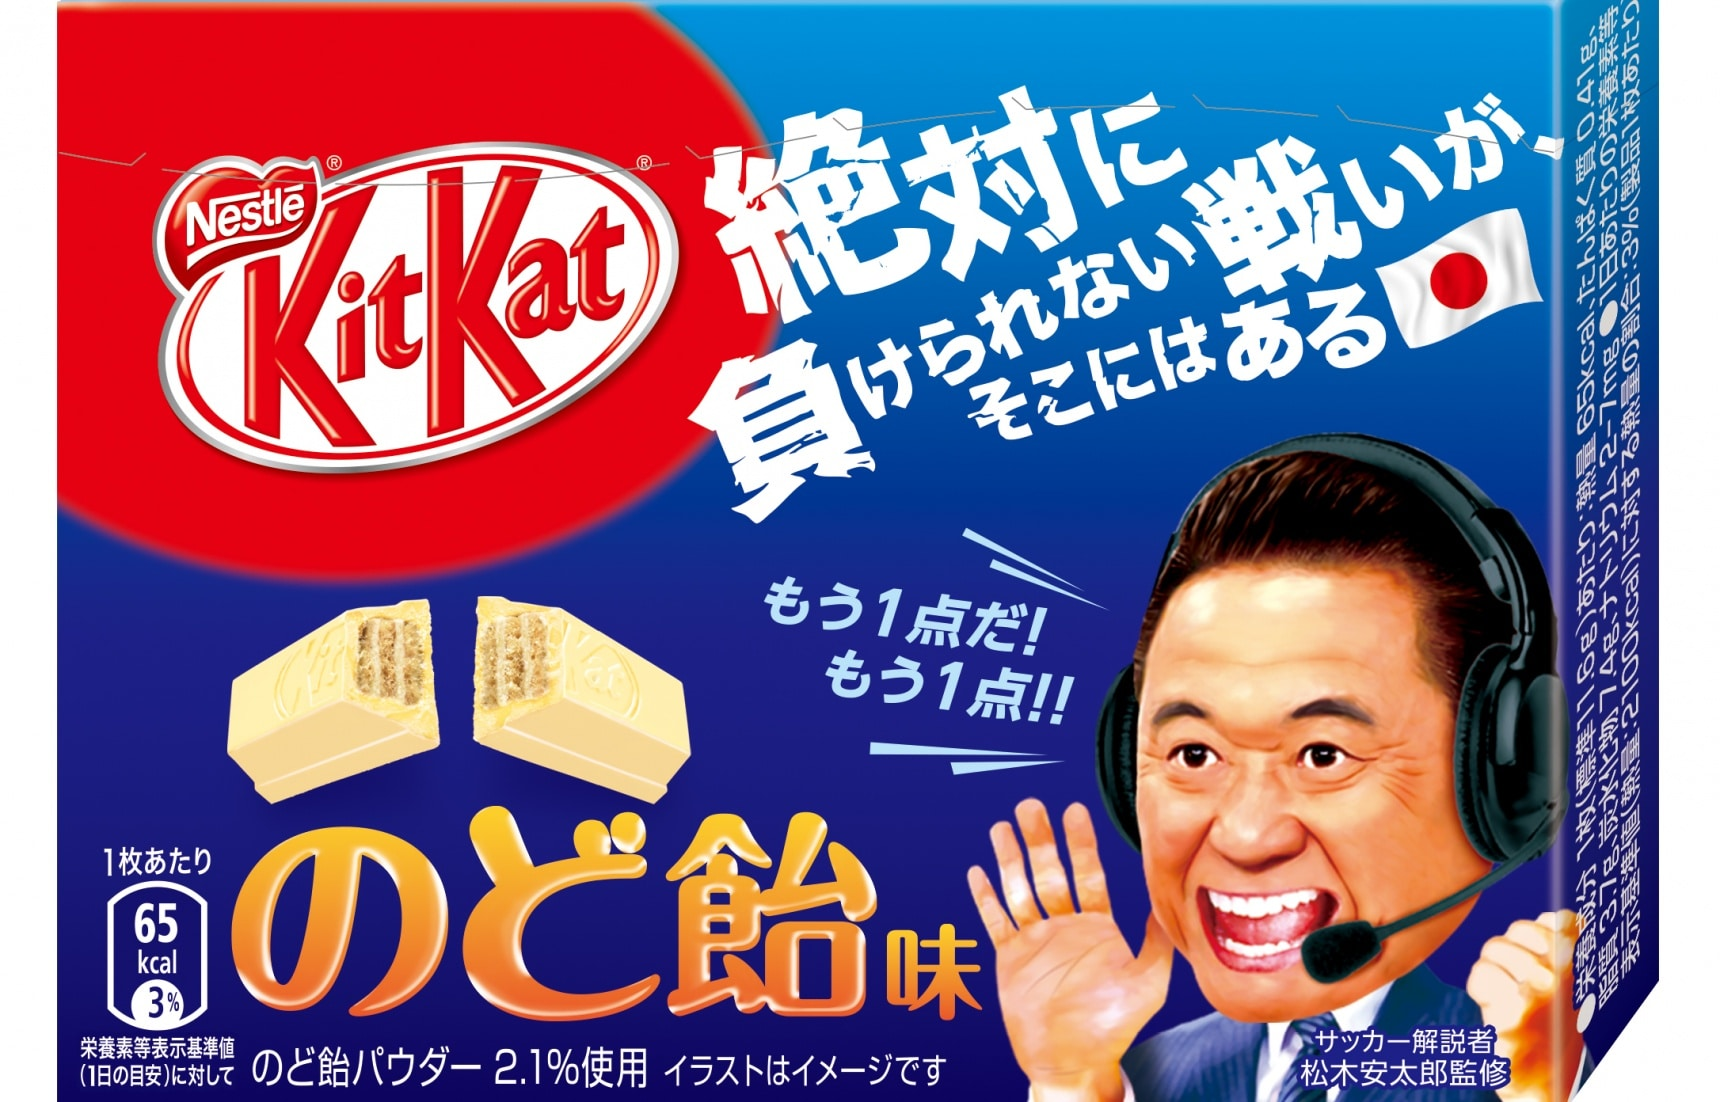 Soothe Your Throat With... a Kit Kat?!